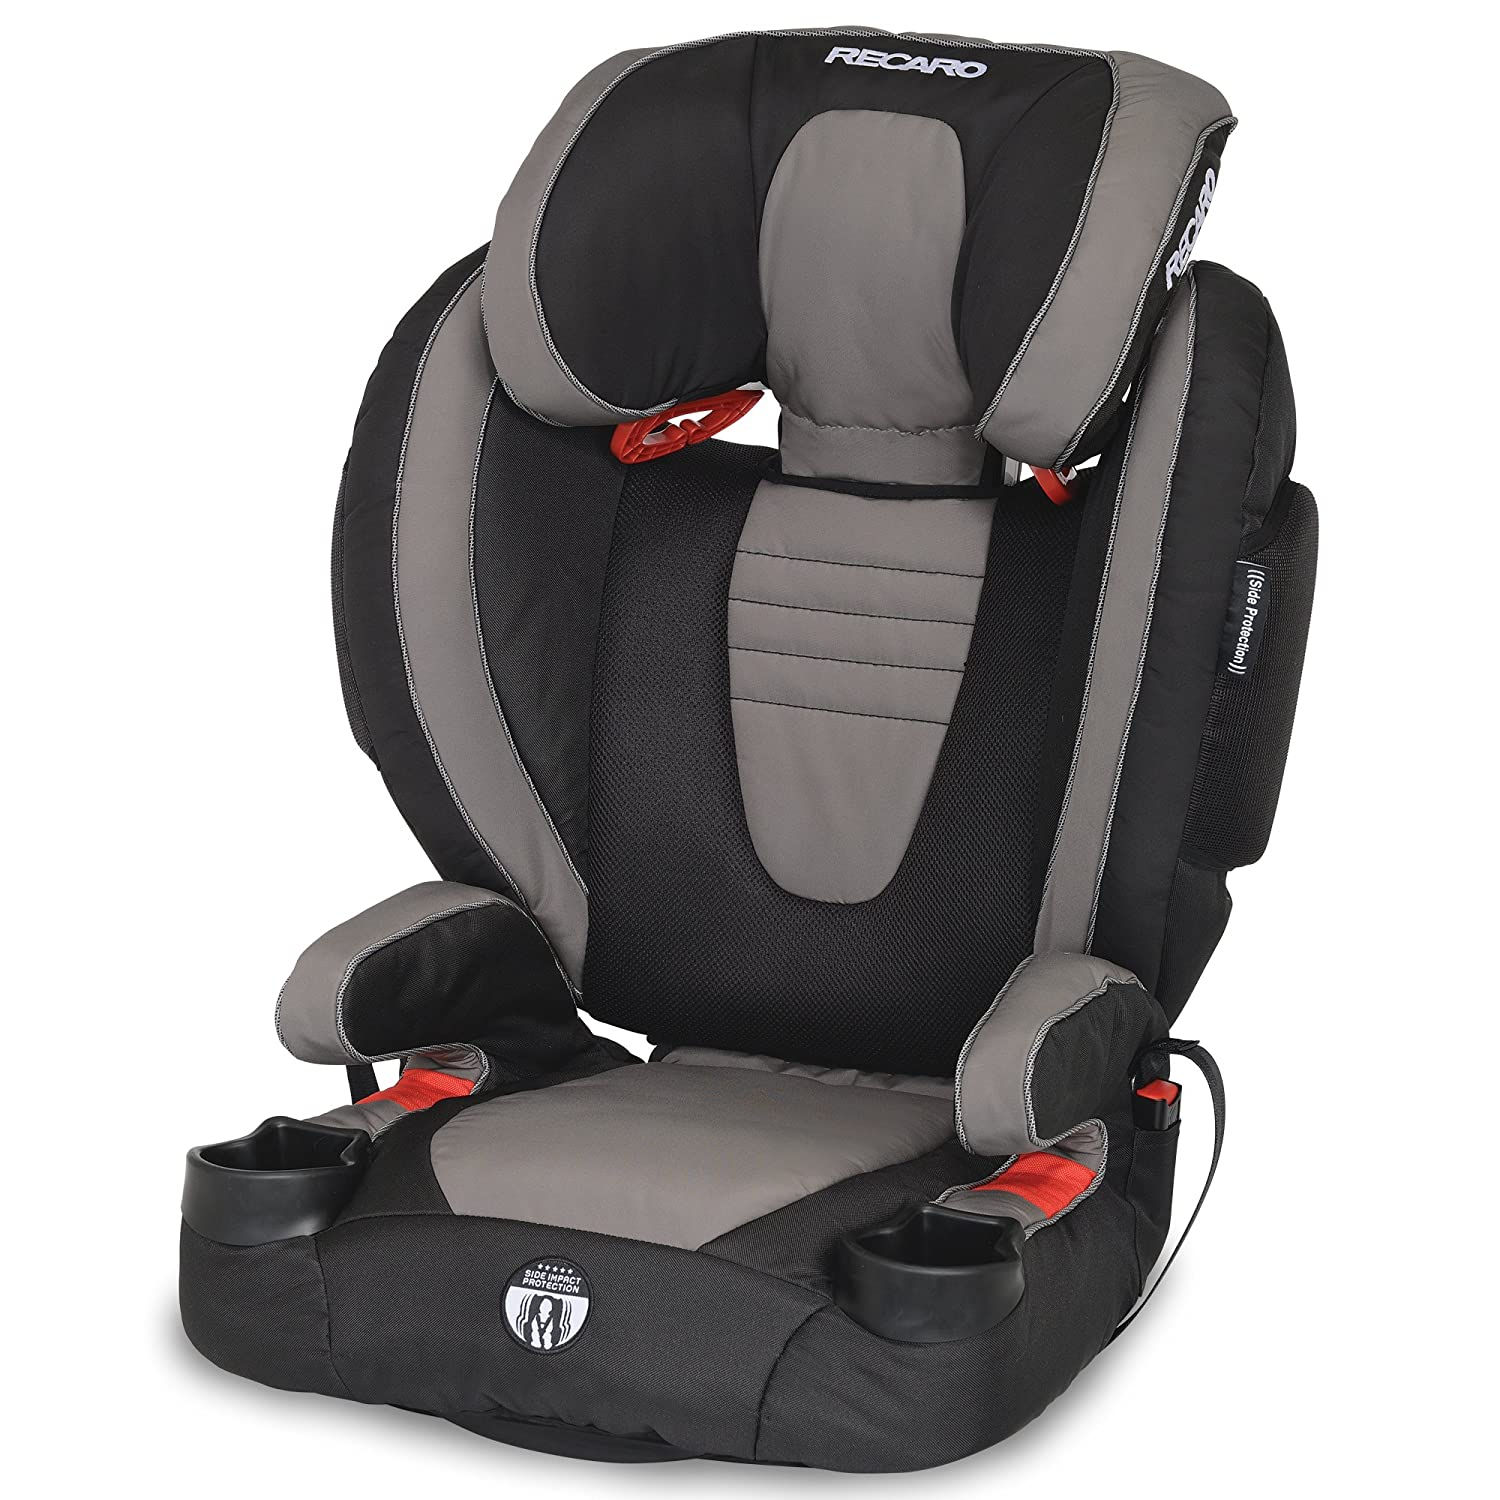 recaro performance booster high back booster car seat knight ebay. Black Bedroom Furniture Sets. Home Design Ideas